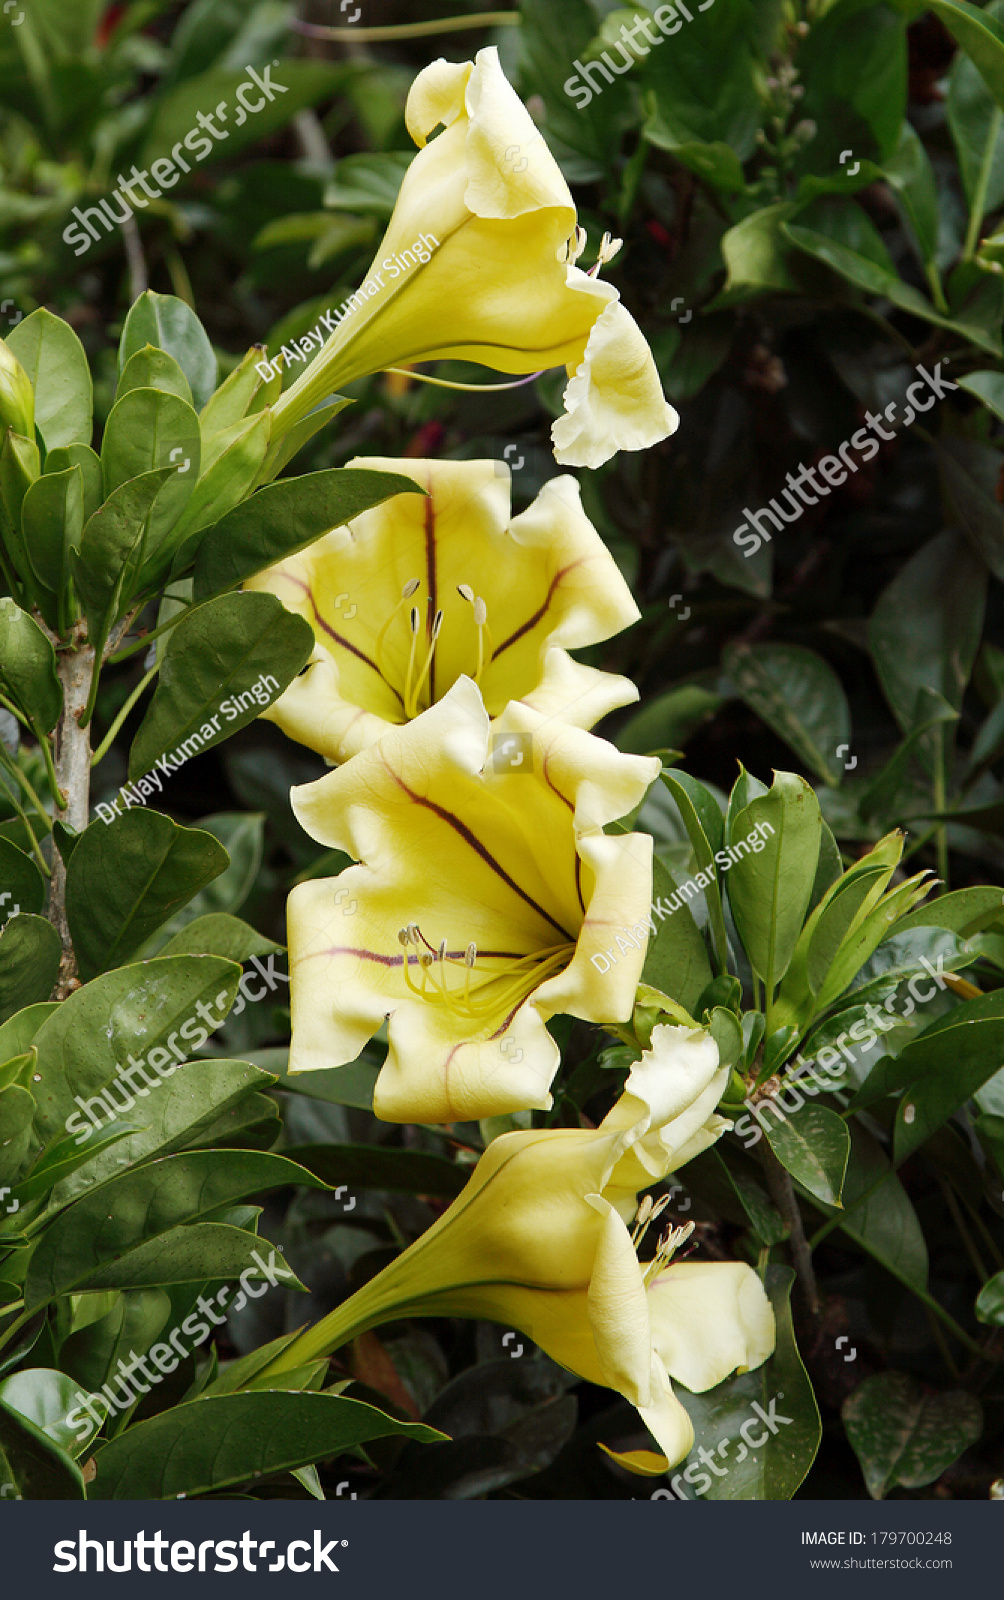 Royalty Free Yellow Cup Of Gold Vine Solandra 179700248 Stock Photo